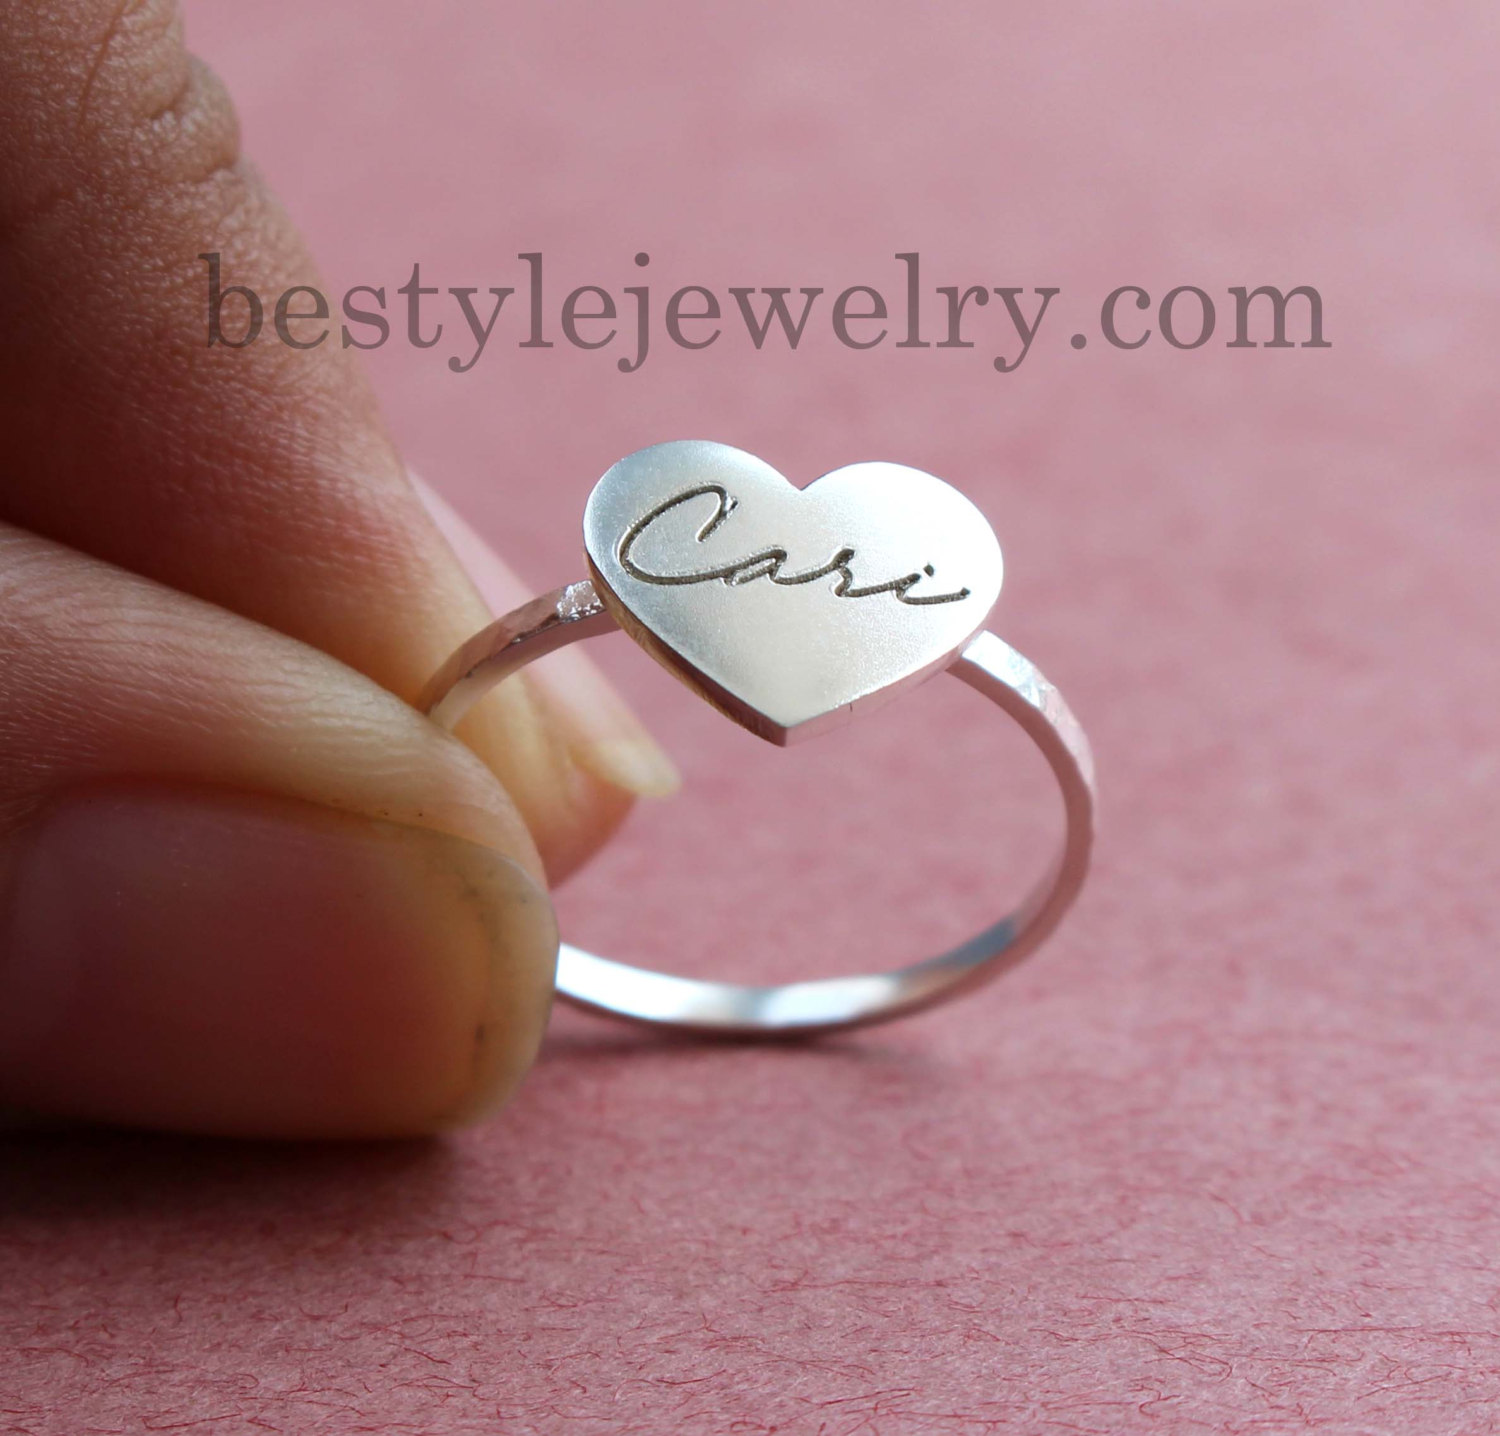 Signature Heart Ring - Engraved Handwriting Heart Ring - Engraving Ring - Christmas Gifts - Personalized Jewelry